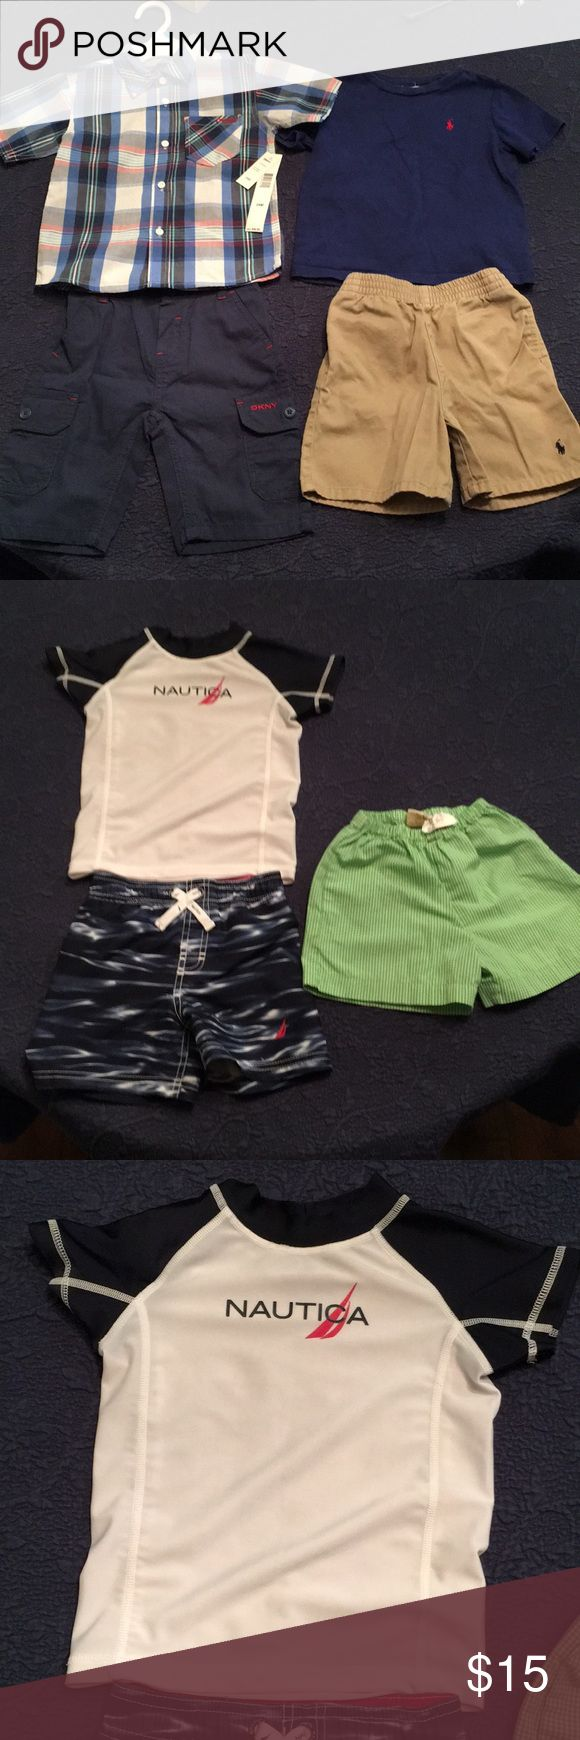 Bundle of Boys' 24 month clothes, 7 pieces total I am selling a bundle of Boys' clothing size 24 months. Included is a pair of beige Ralph Lauren shorts, a royal blue Ralph Lauren tee, a NWT DKNY set (plaid button down shirt and navy shorts), a pair of green gingham shorts, and a Nautica swim set (trunks and swim tee). Total of 7 pieces. All are in good preowned condition except the DKNY outfit, which is NWT. Thanks for looking and any questions please ask! Other #Lookmarinero